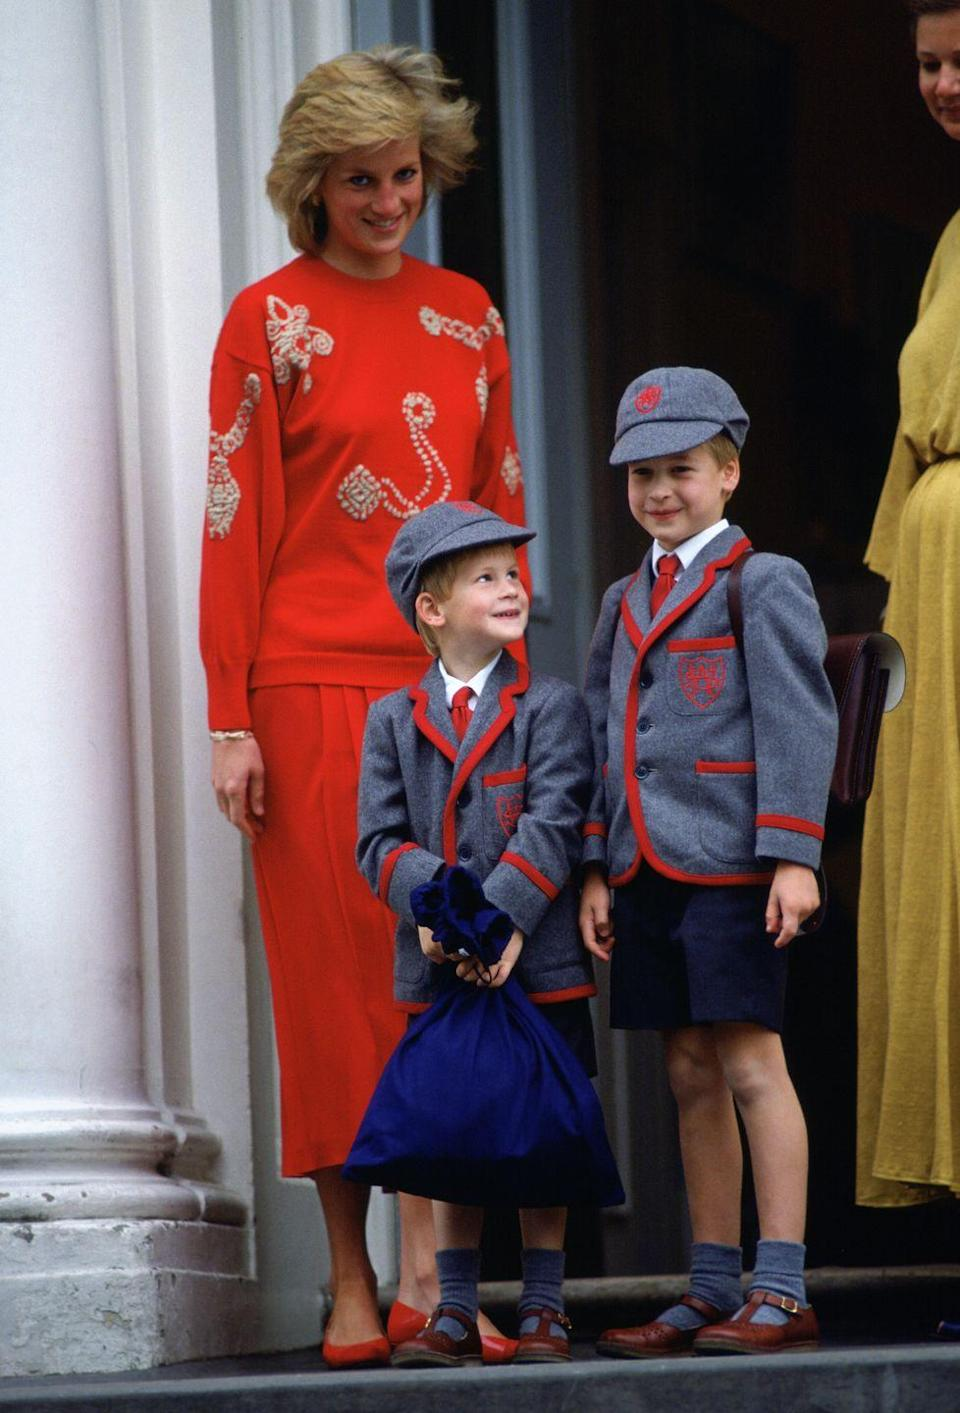 "<p>Usually, royals are taught at home and <a href=""https://www.popsugar.com/celebrity/photo-gallery/43892620/image/43896359/When-She-Insisted-Her-Sons-Go-School-Other-Kids"" rel=""nofollow noopener"" target=""_blank"" data-ylk=""slk:by a governess"" class=""link rapid-noclick-resp"">by a governess</a> inside the palace. But at his mother's insistence, William became the first heir to the throne to attend public school — at Jane Mynor's nursery school near Kensington Palace. </p><p>""The decision to have William, 3, develop his finger-painting skills among commoners showed the influence of Diana, Princess of Wales, who had worked in a nursery school herself when she was just a Lady,"" George Hackett <a href=""http://www.newsweek.com/princess-diana-diana-william-harry-prince-william-prince-harry-royal-family-383384"" rel=""nofollow noopener"" target=""_blank"" data-ylk=""slk:wrote"" class=""link rapid-noclick-resp"">wrote</a> in <em>Newsweek </em>in 1985. </p>"